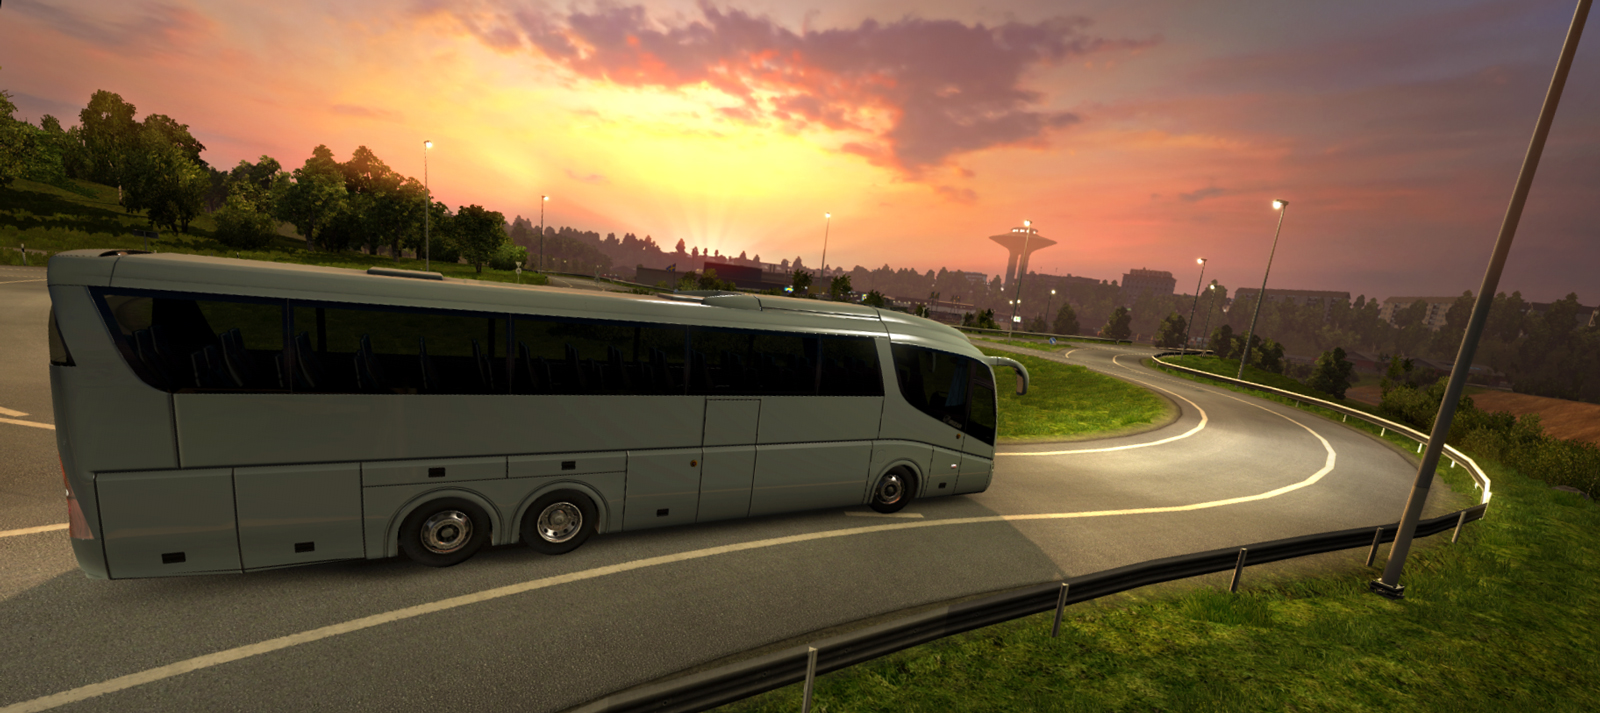 https://scs-misc.s3.amazonaws.com/newsletter/1/images/euro_coach_simulator_1600.jpg